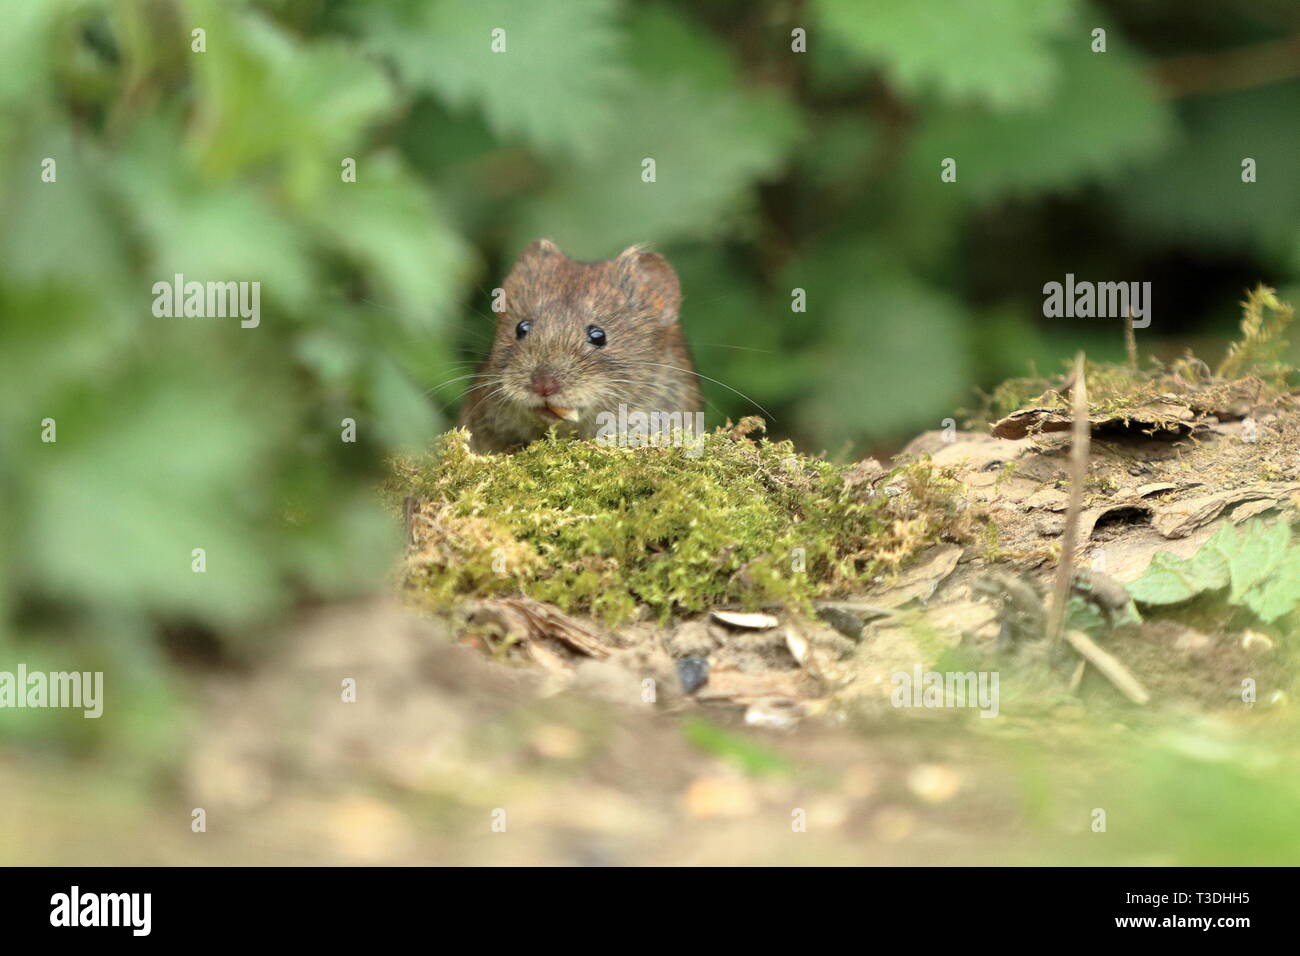 Bank vole with a seed in its mouth - Stock Image